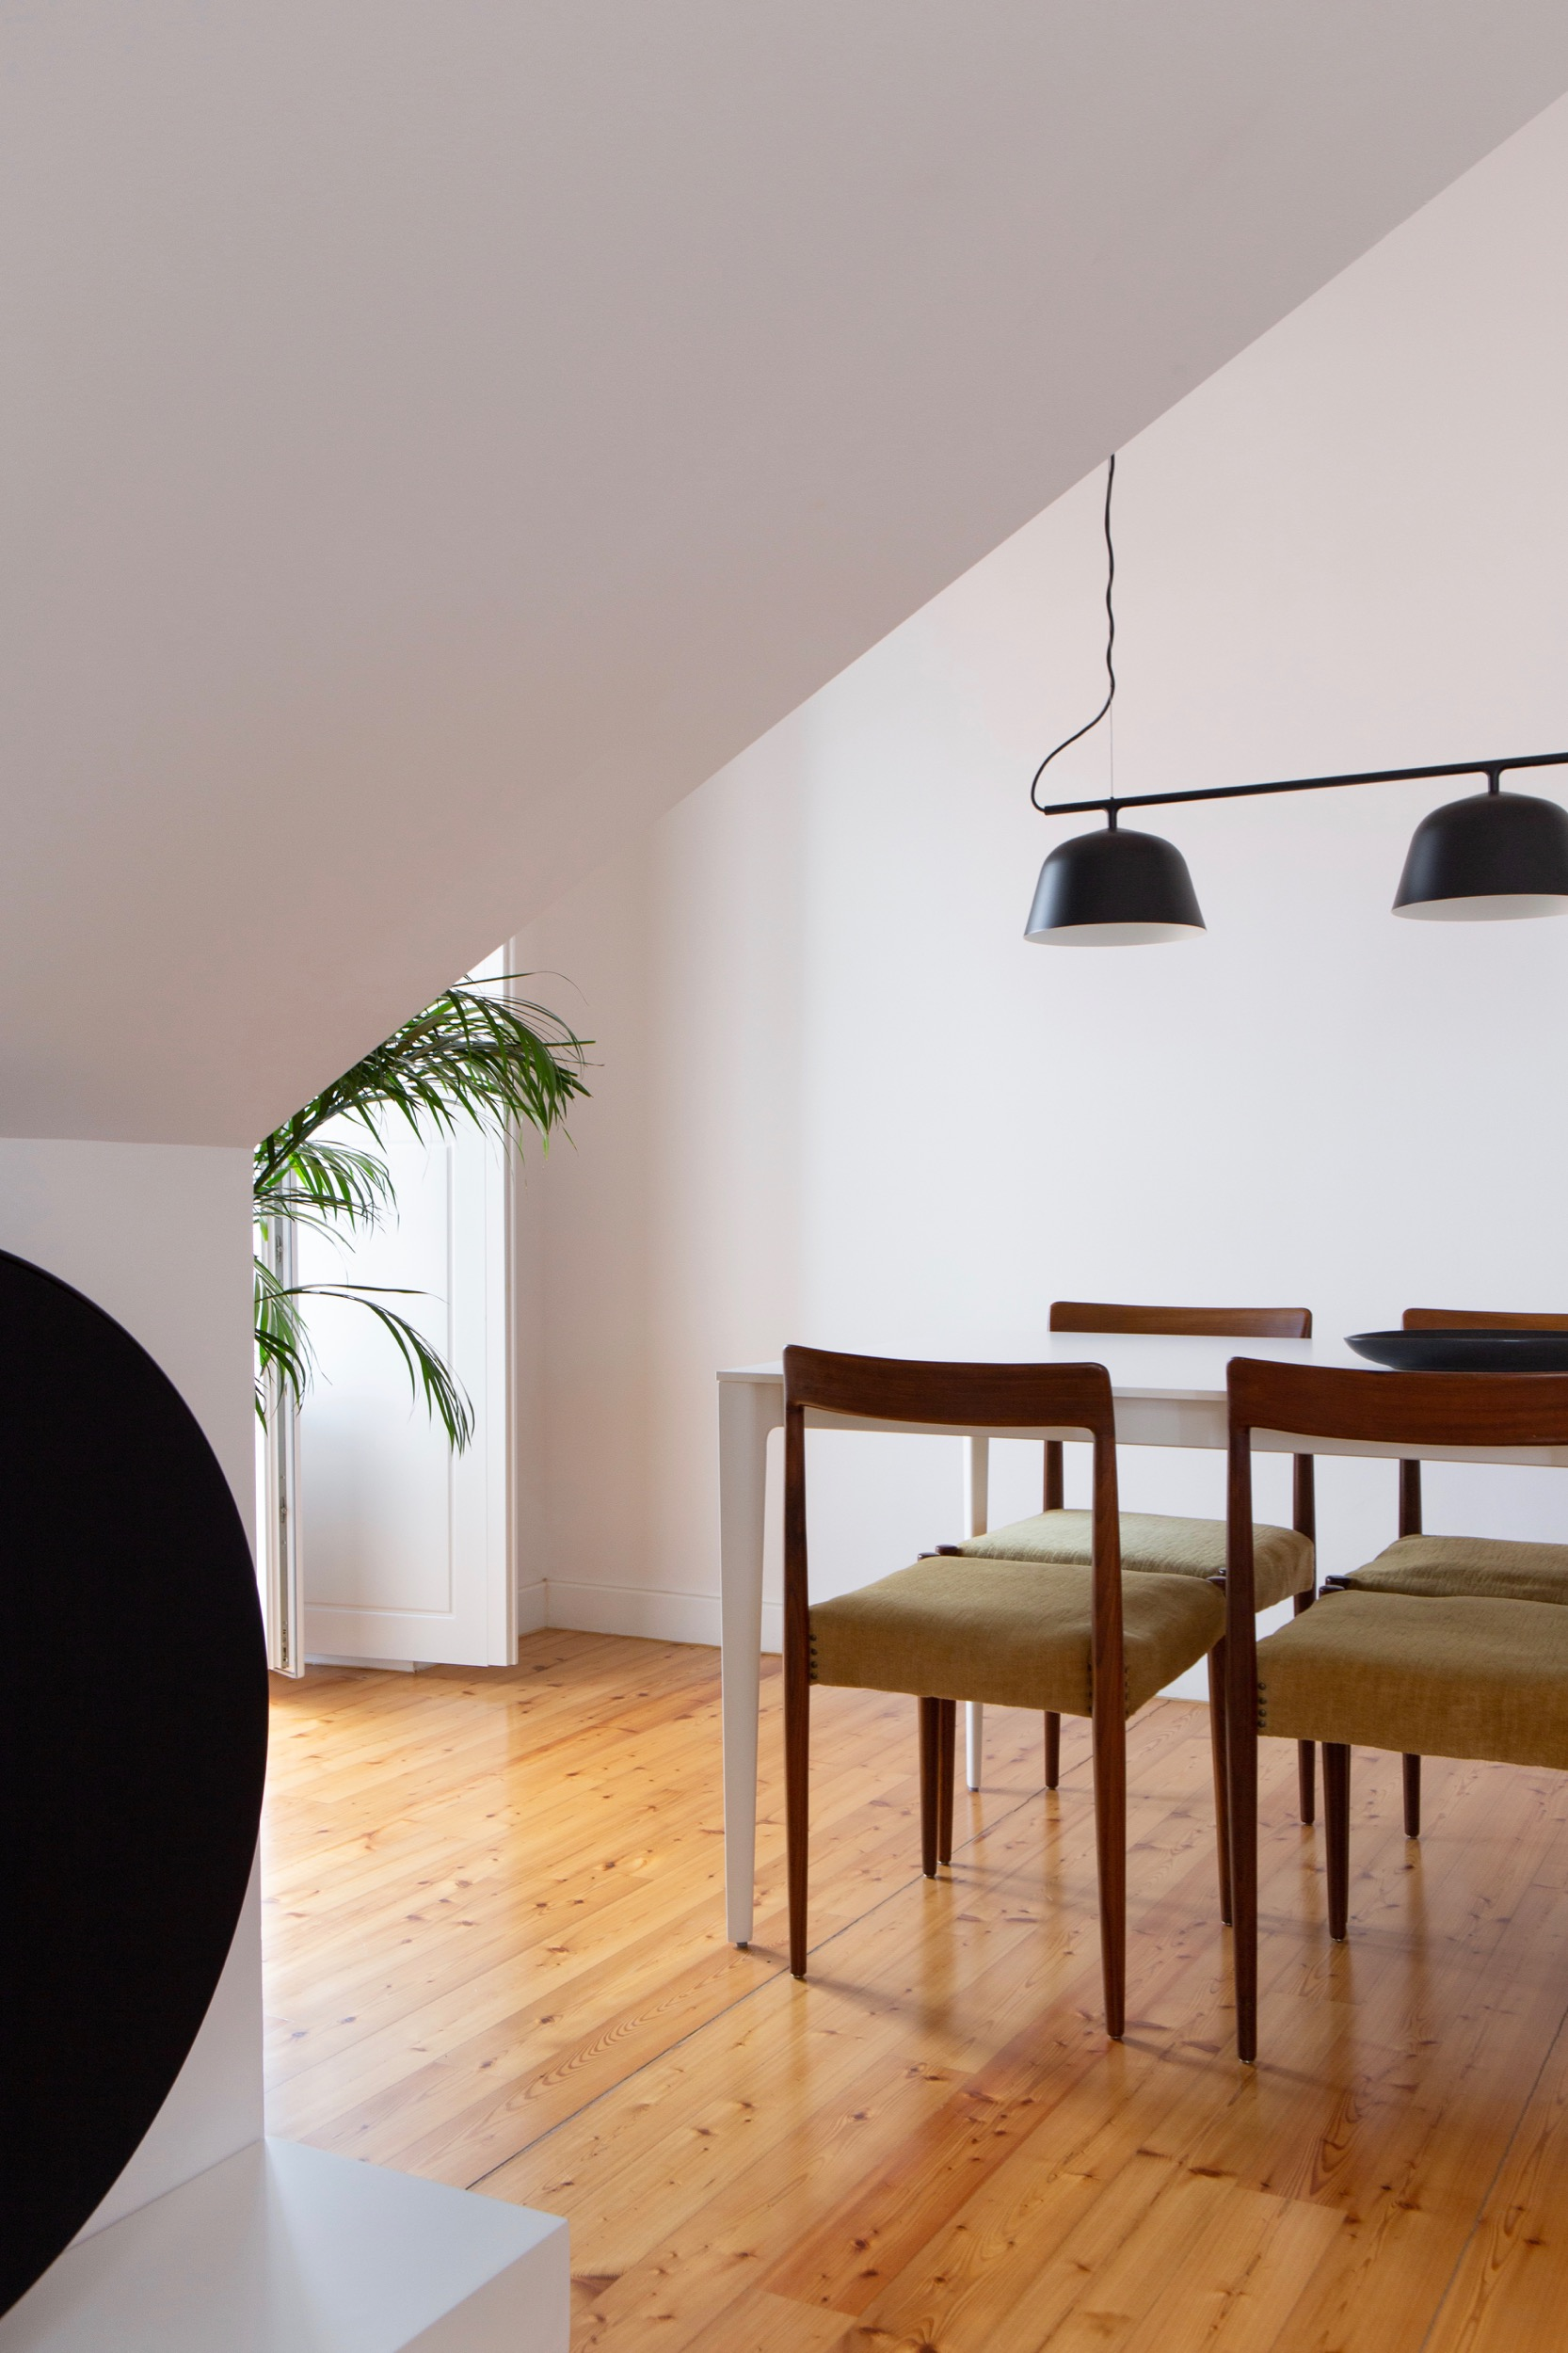 Photo of Lola Cwikowski Studio residential project showing B&O Beoplay A9 speaker,